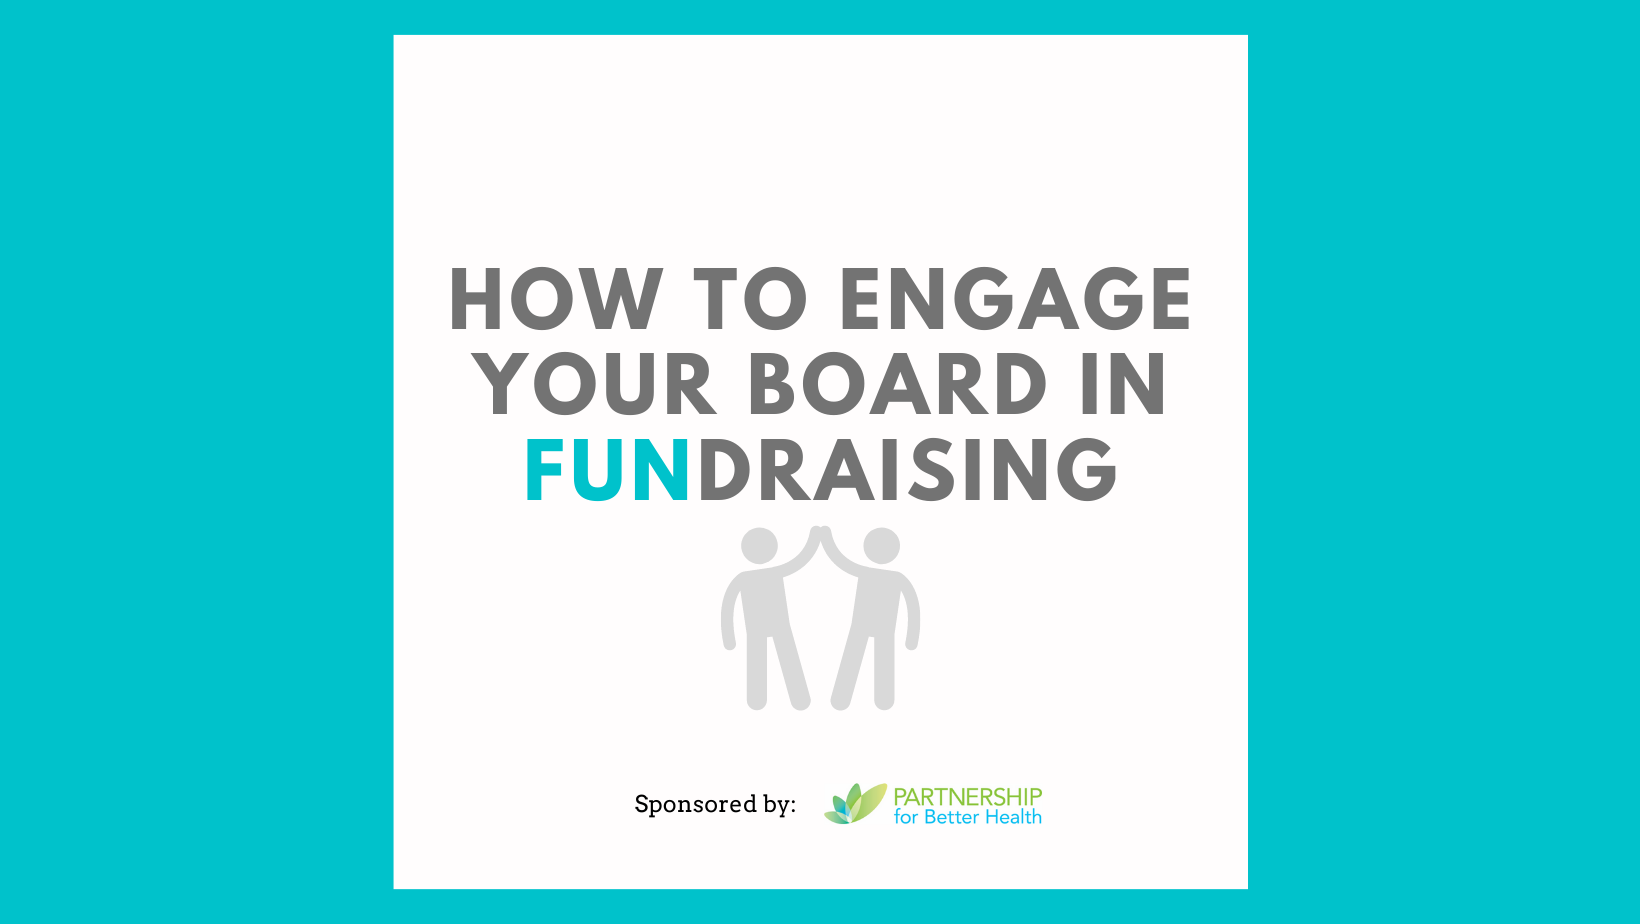 How to Engage Your Board in FUNdraising